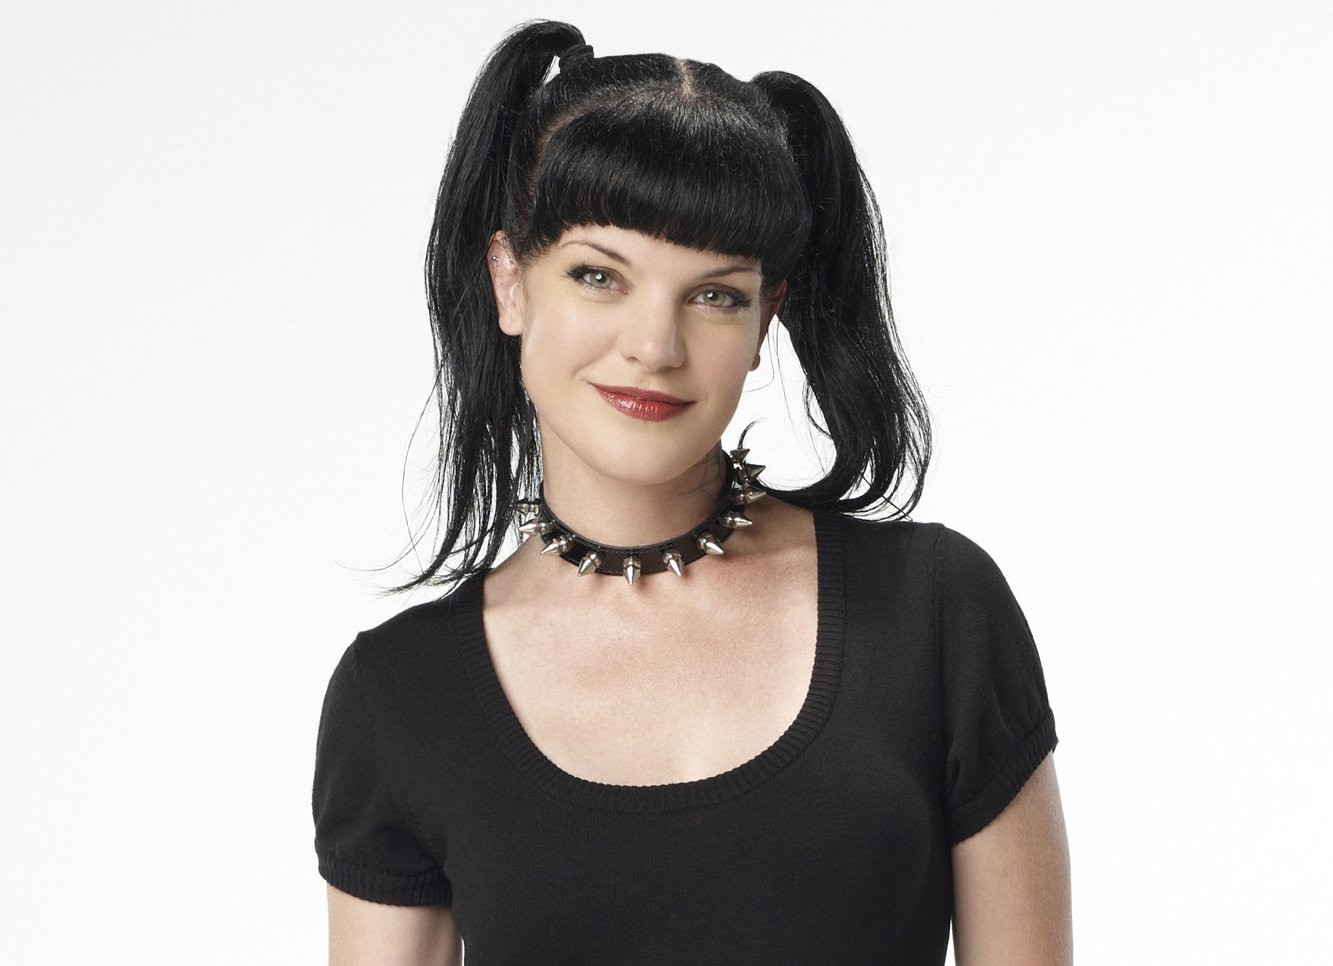 pauley-perrette-pin-up-pictures